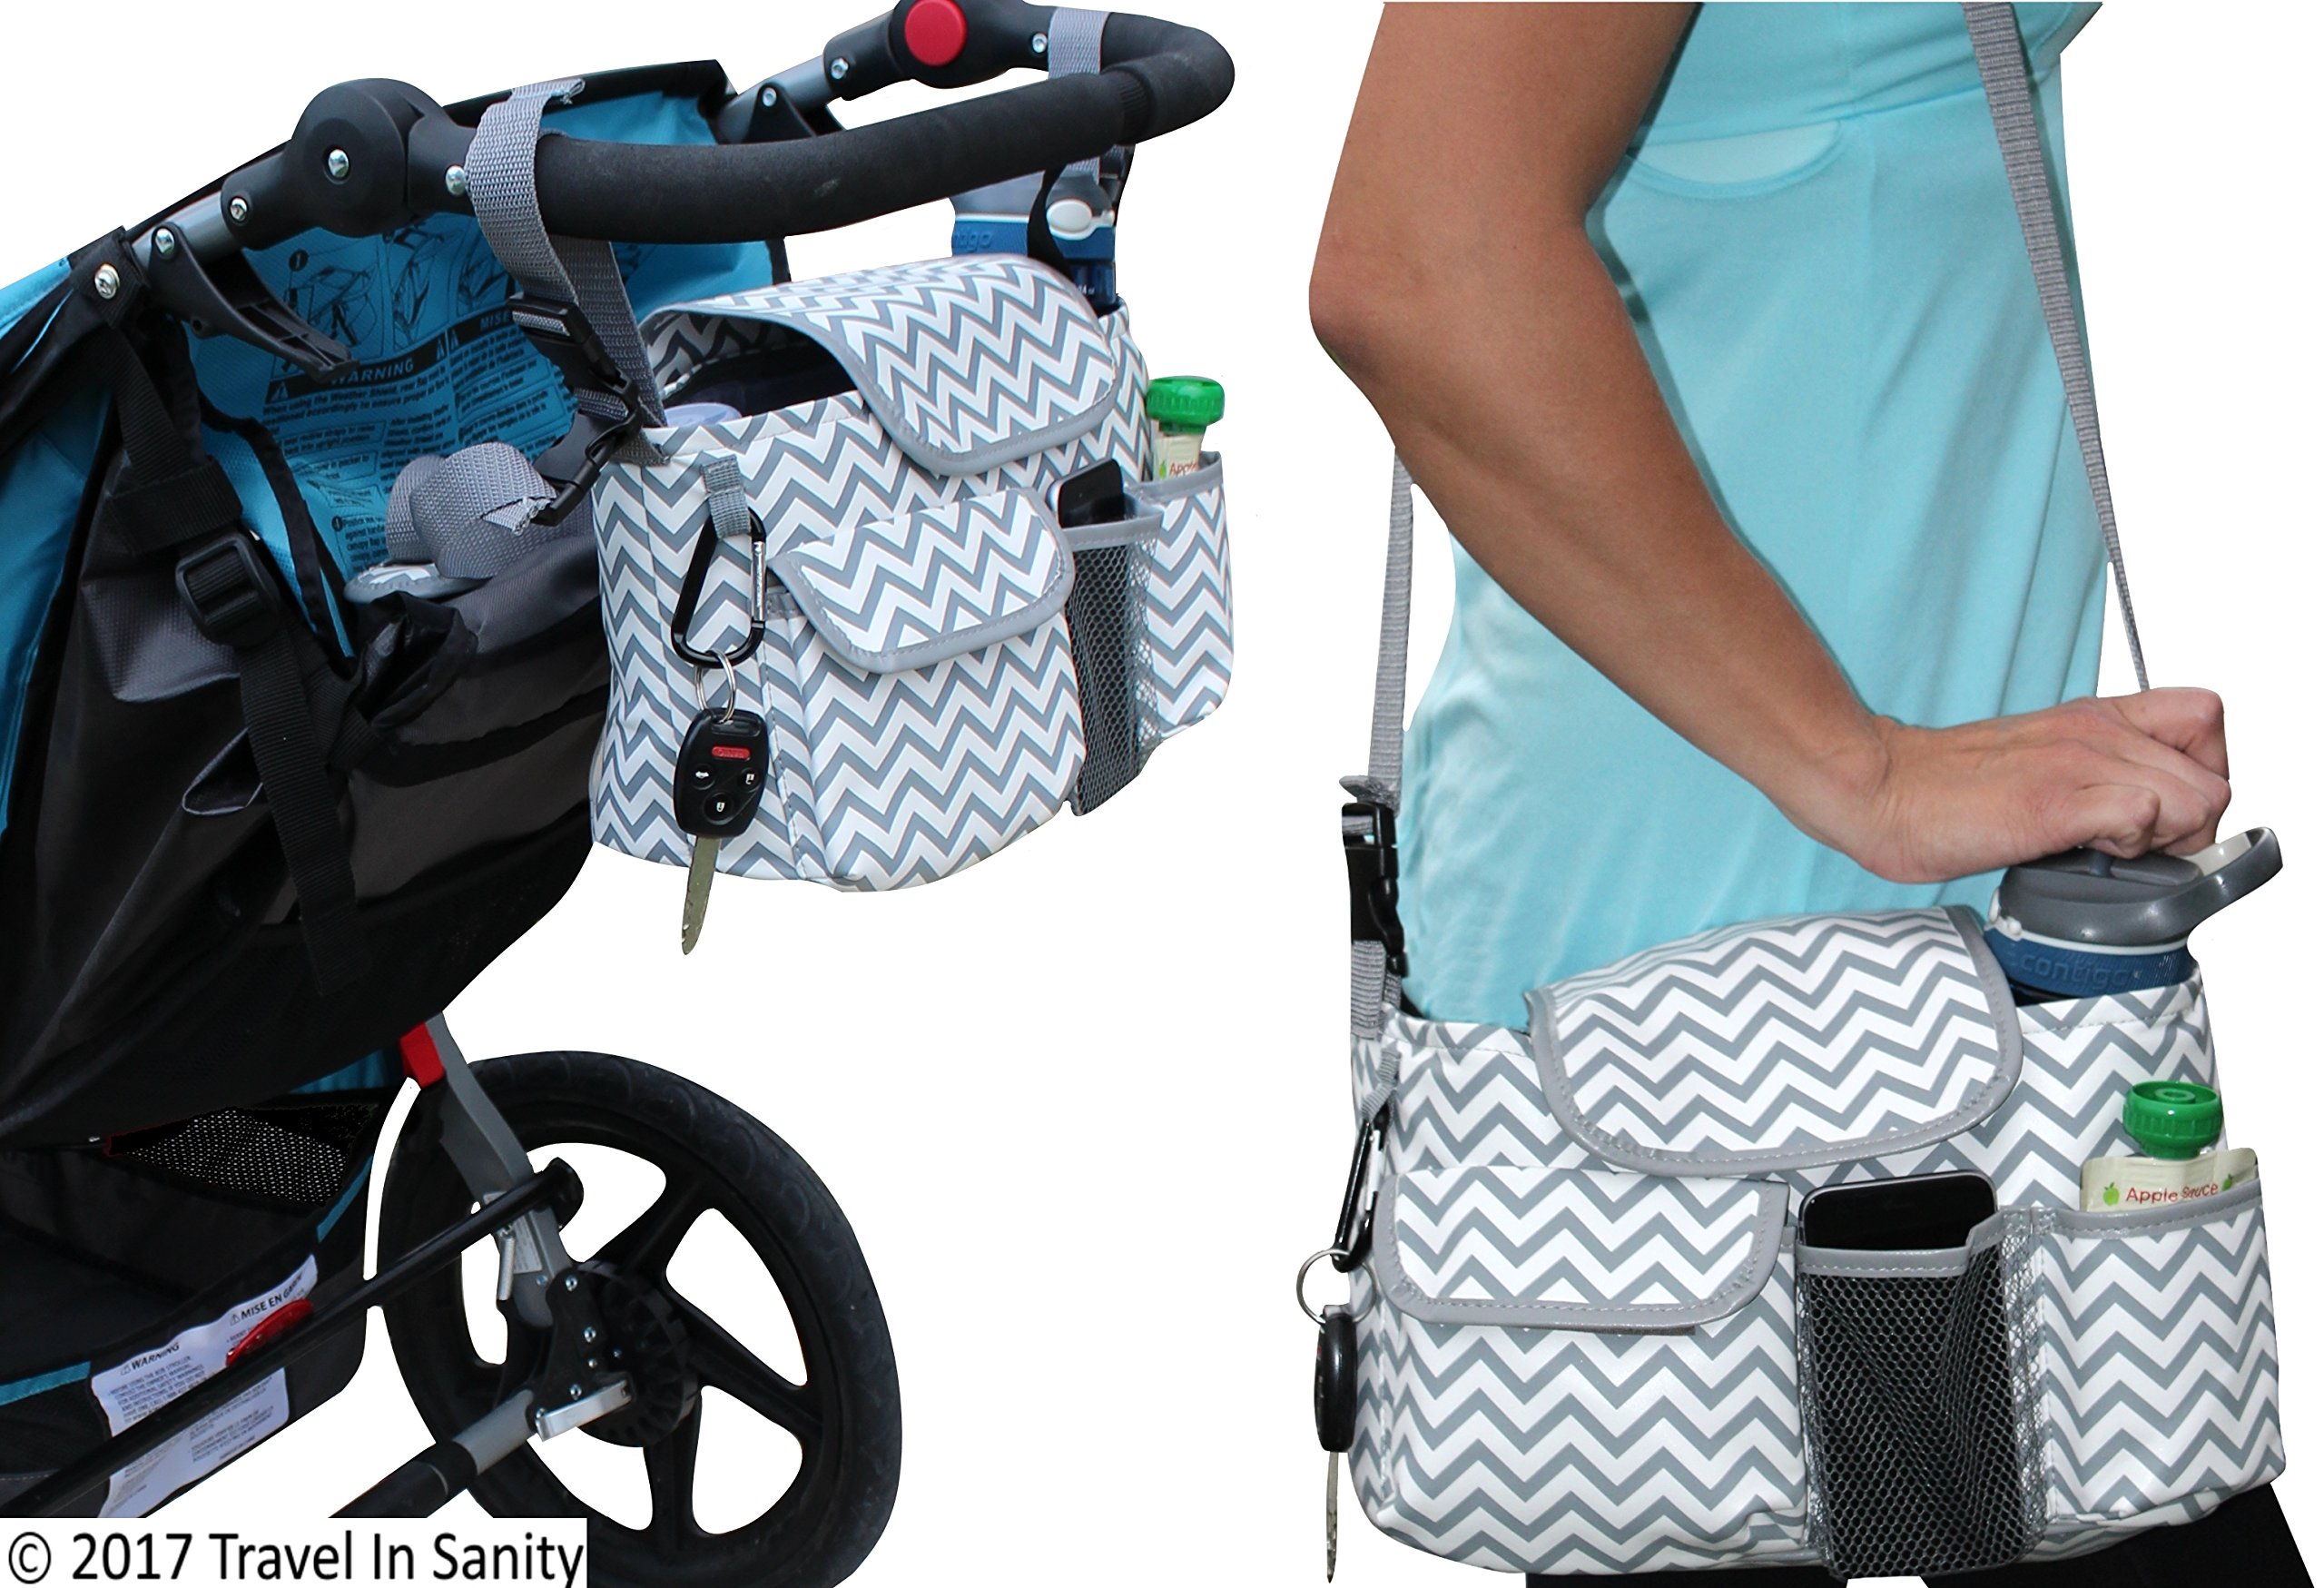 Universal Stroller Organizer with Cup Holders | Mini Diaper Bag | Easily Store Wallets, Keys, Bottles, Diapers, Wipes & Toys. | Premium Chevron Stroller Caddy by Travel in Sanity by Travel in Sanity (Image #4)